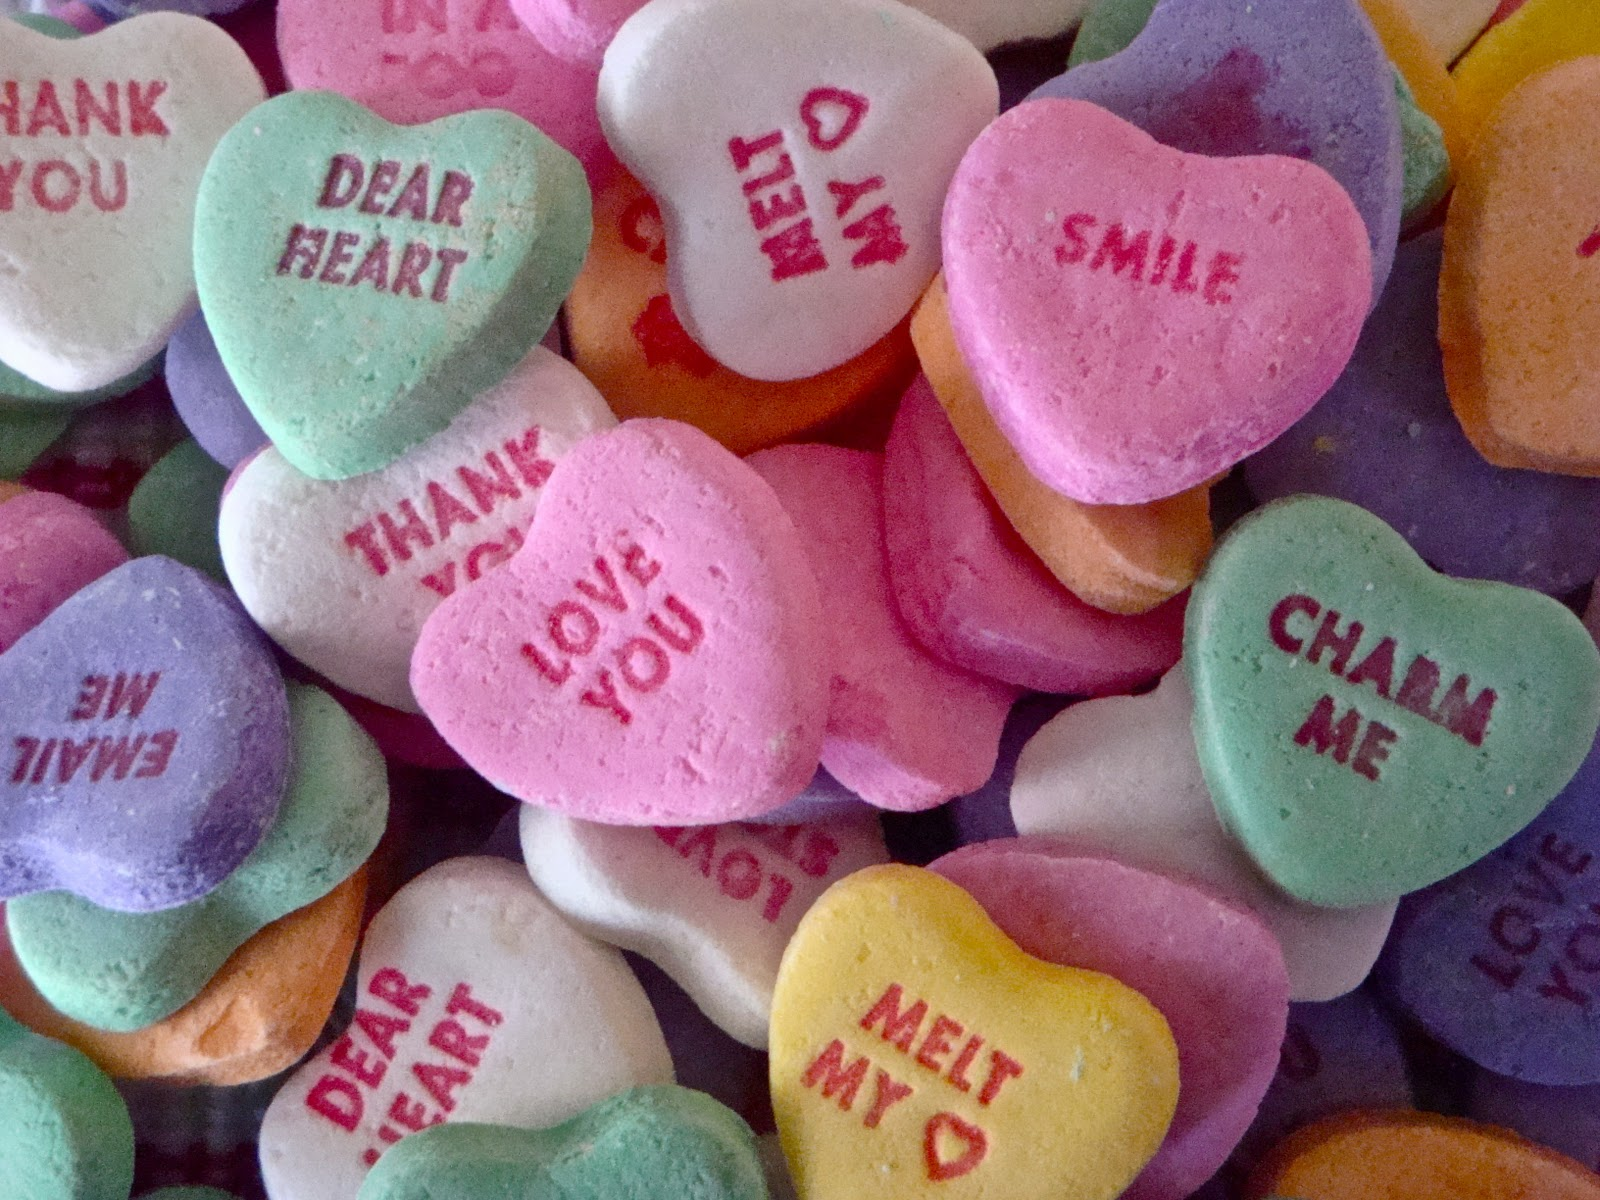 From Saintly Starts To Candy Hearts